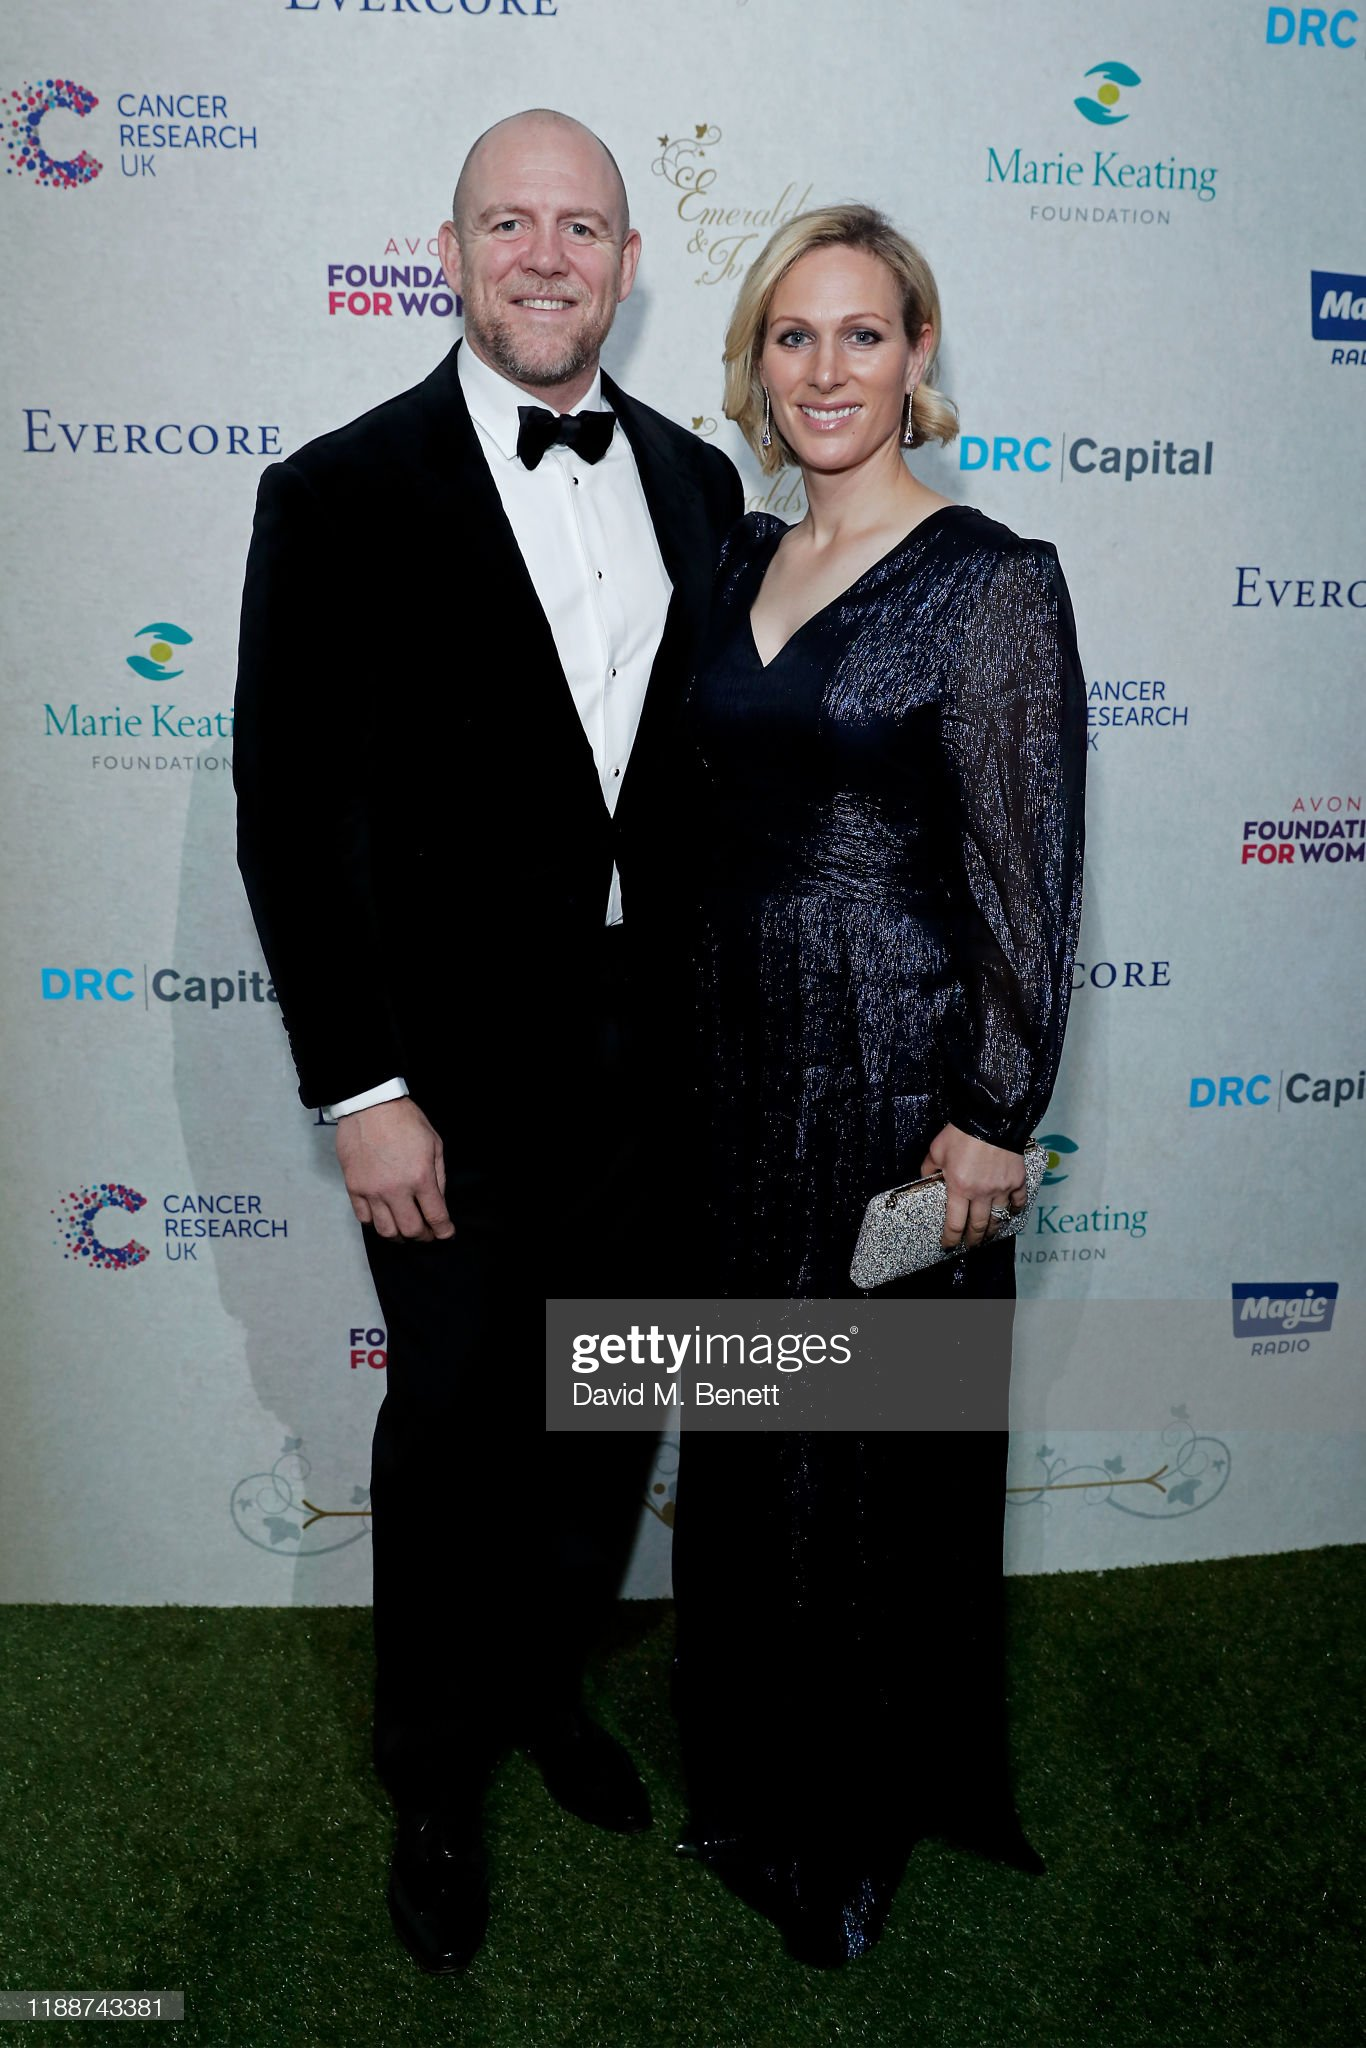 Ronan And Storm Keating Host 13th Emeralds & Ivy Ball In Partnership With Cancer Research UK And The Marie Keating Foundation : News Photo